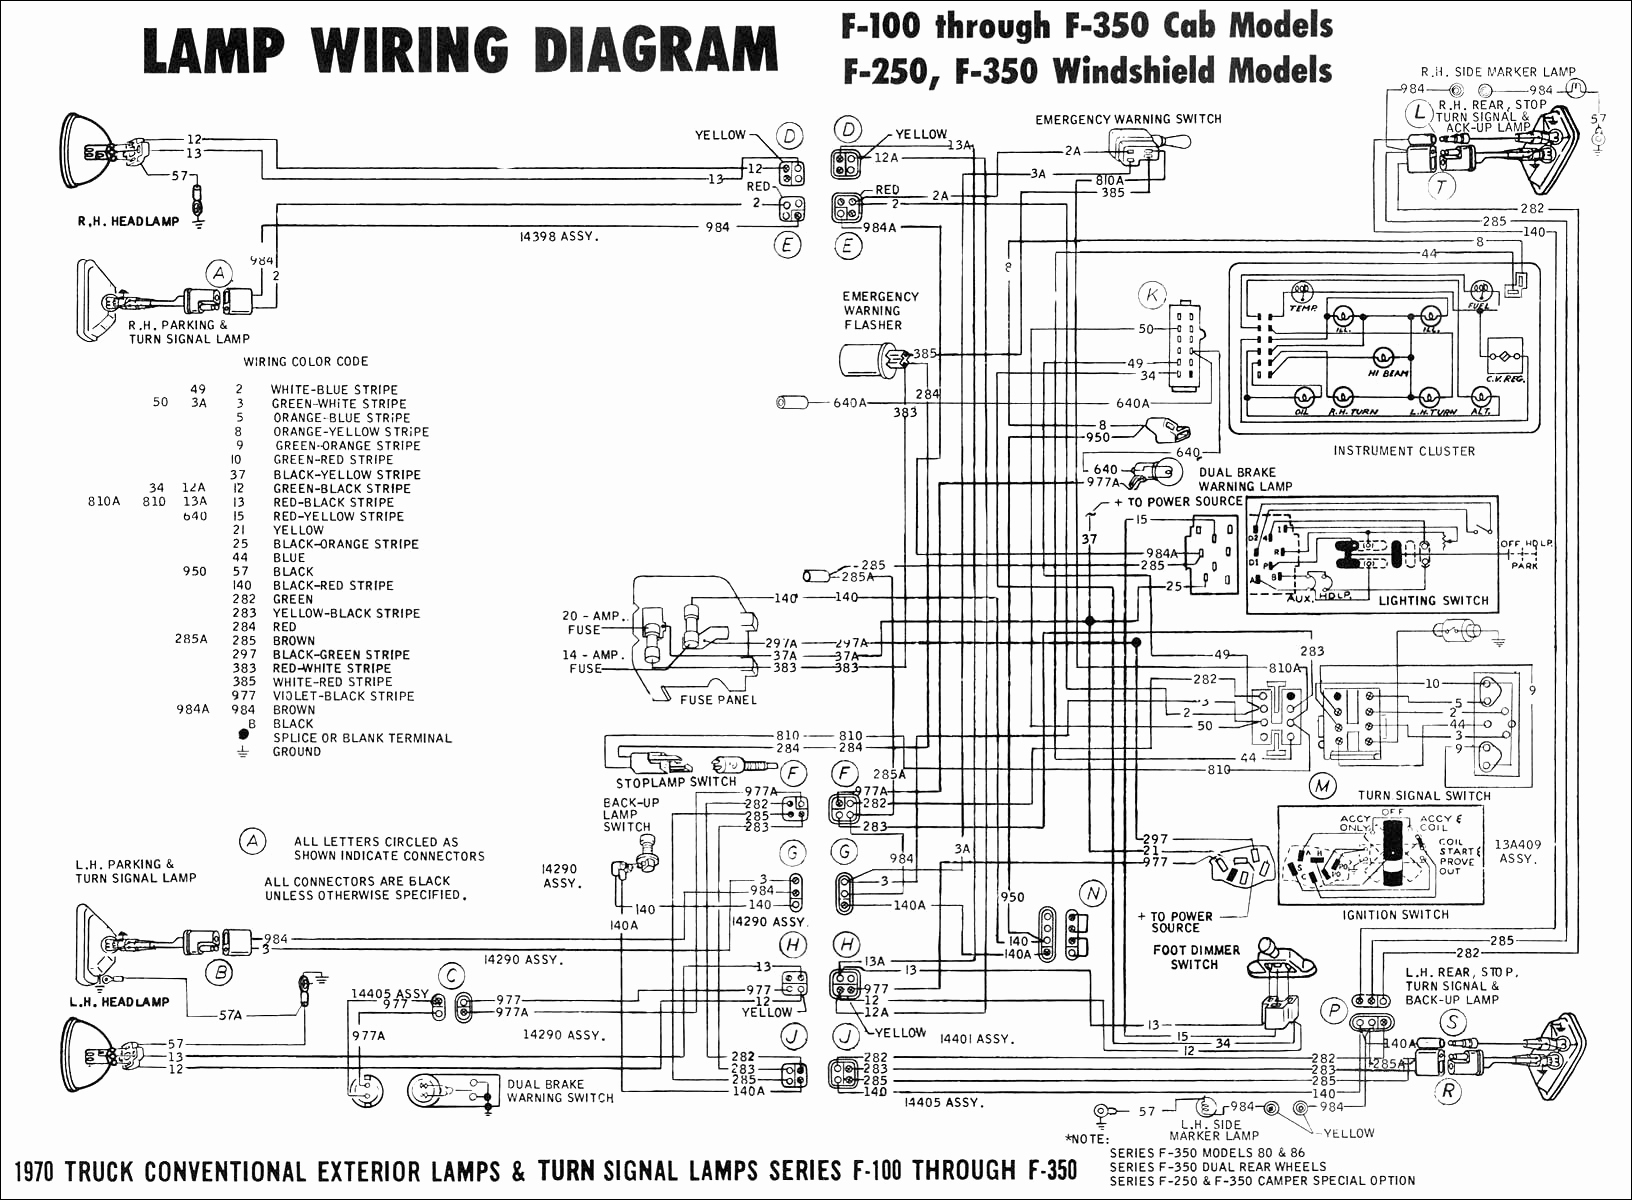 4 Wire Oxygen Sensor Wiring Diagram | Free Wiring Diagram